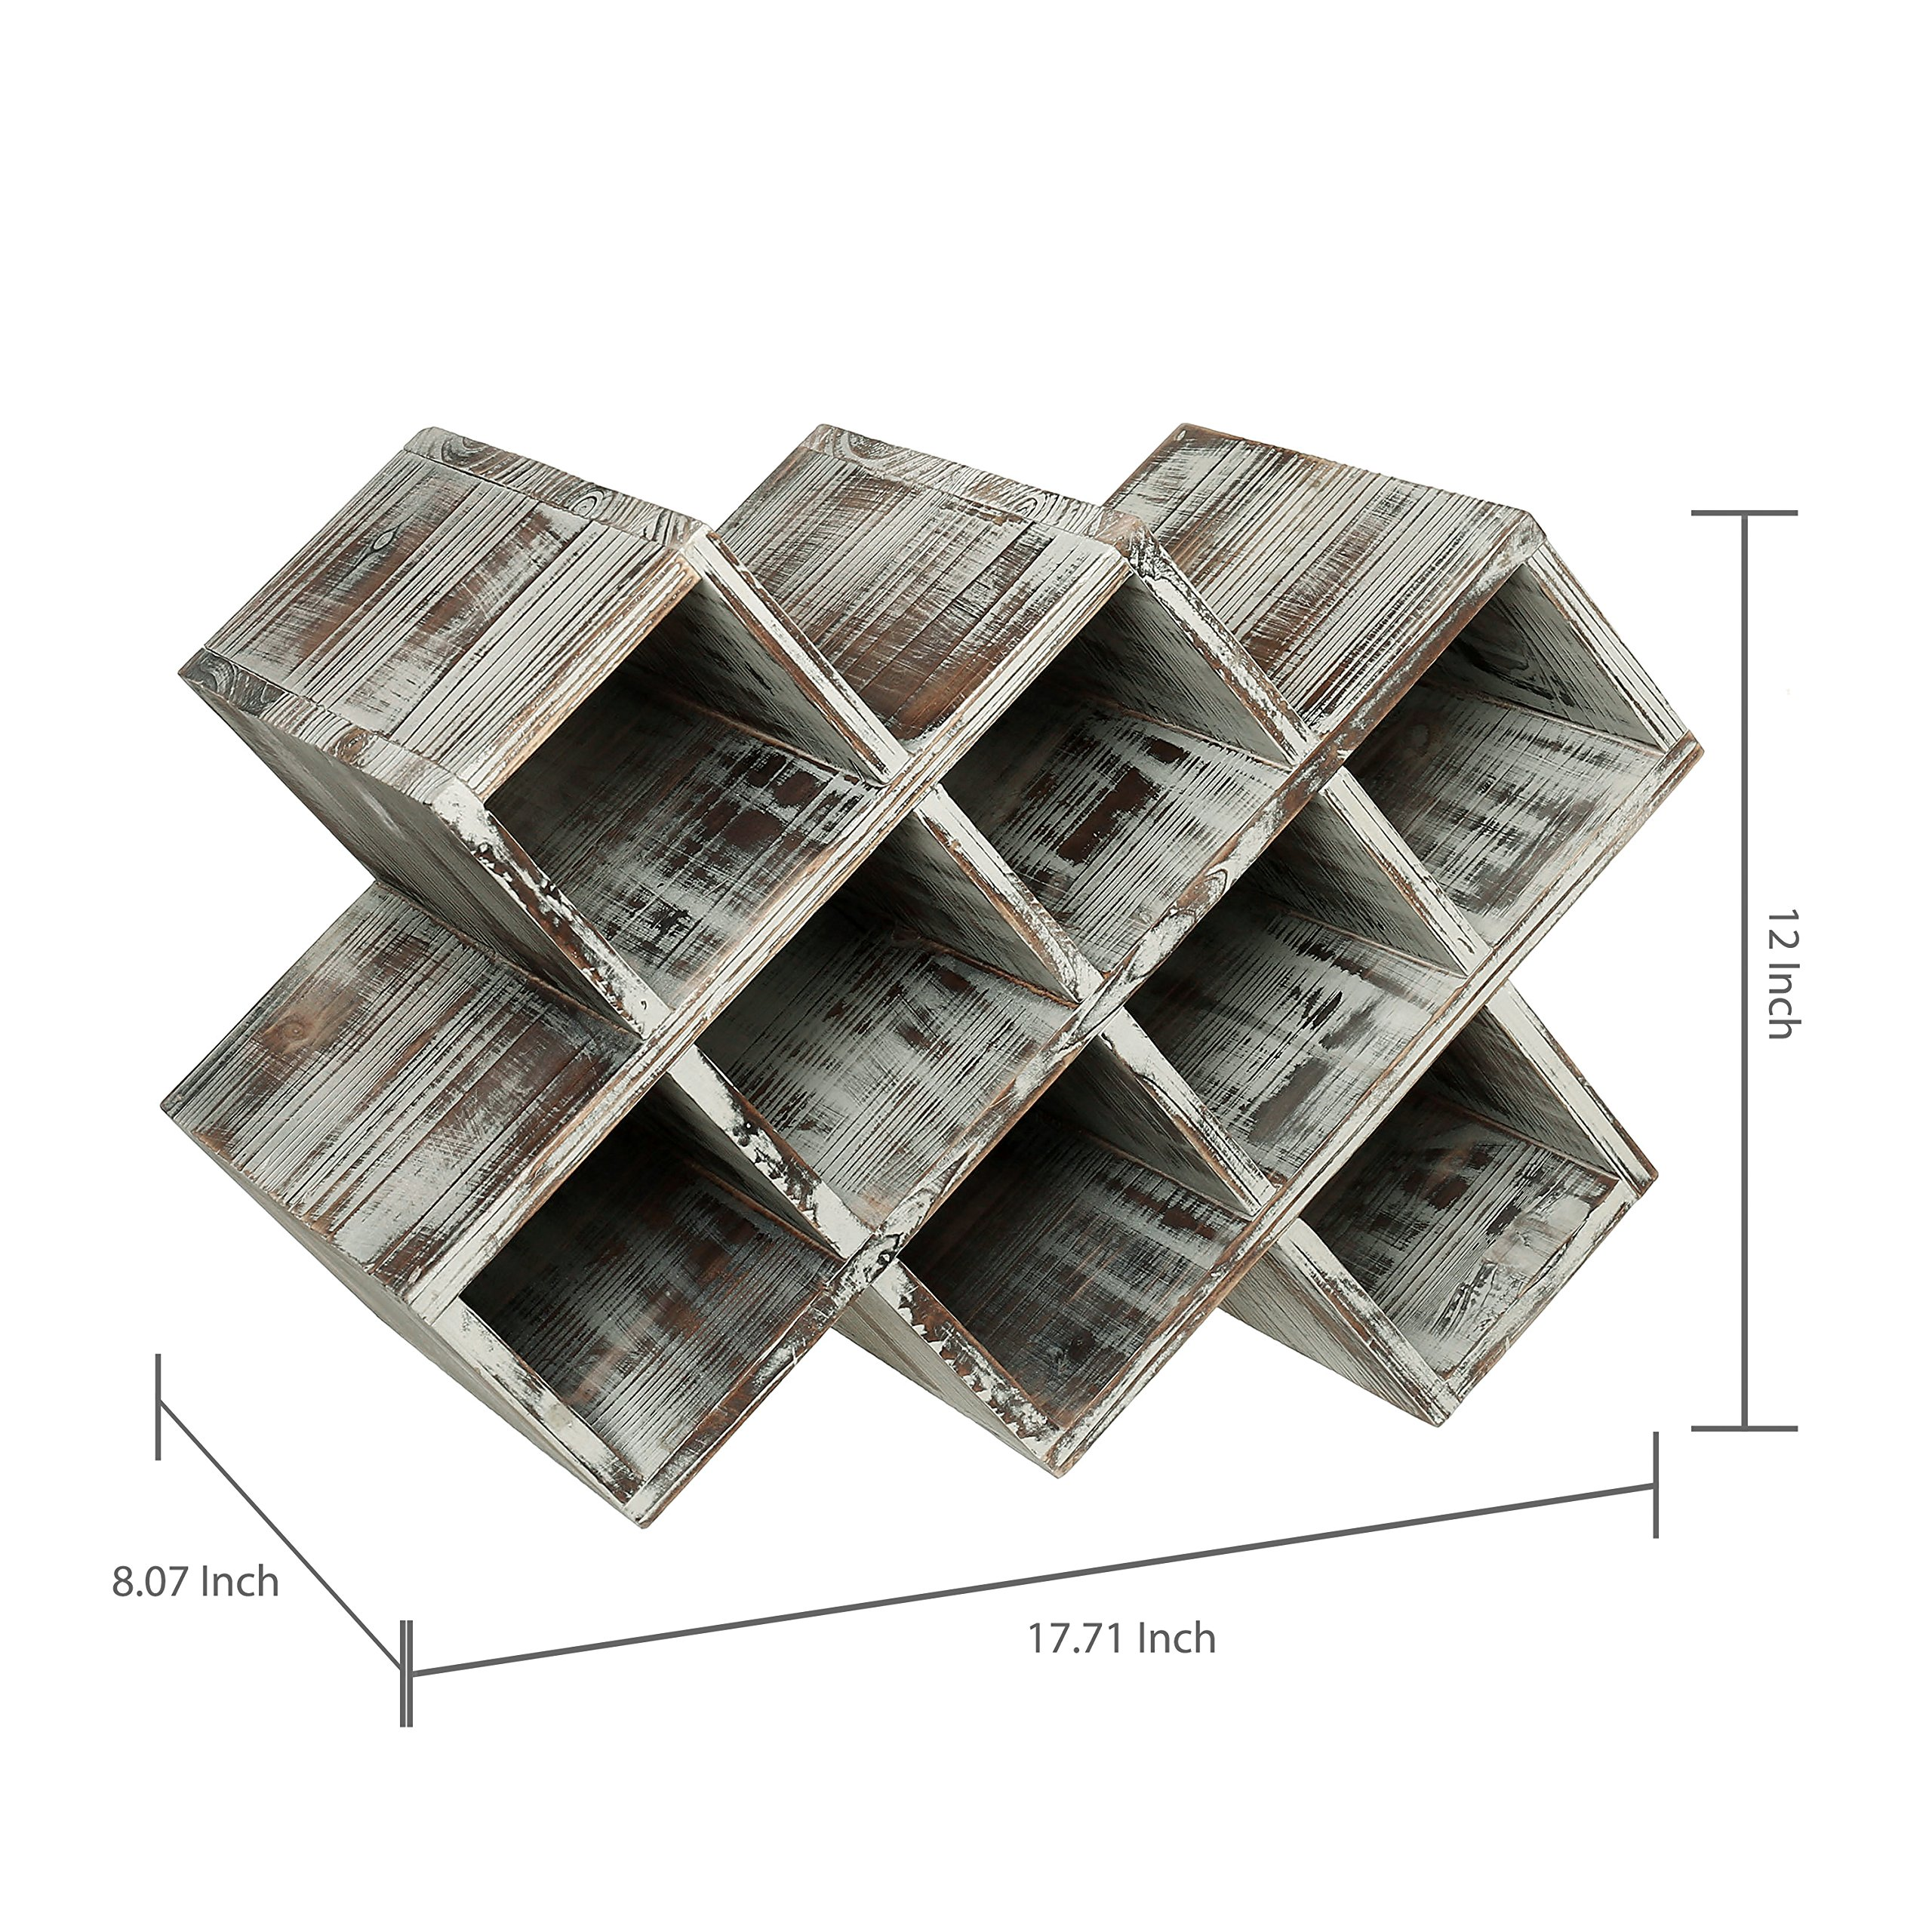 Countertop Rustic Torched Wood Wine Rack, Geometric Design 8-Bottle Storage Organizer by MyGift (Image #4)